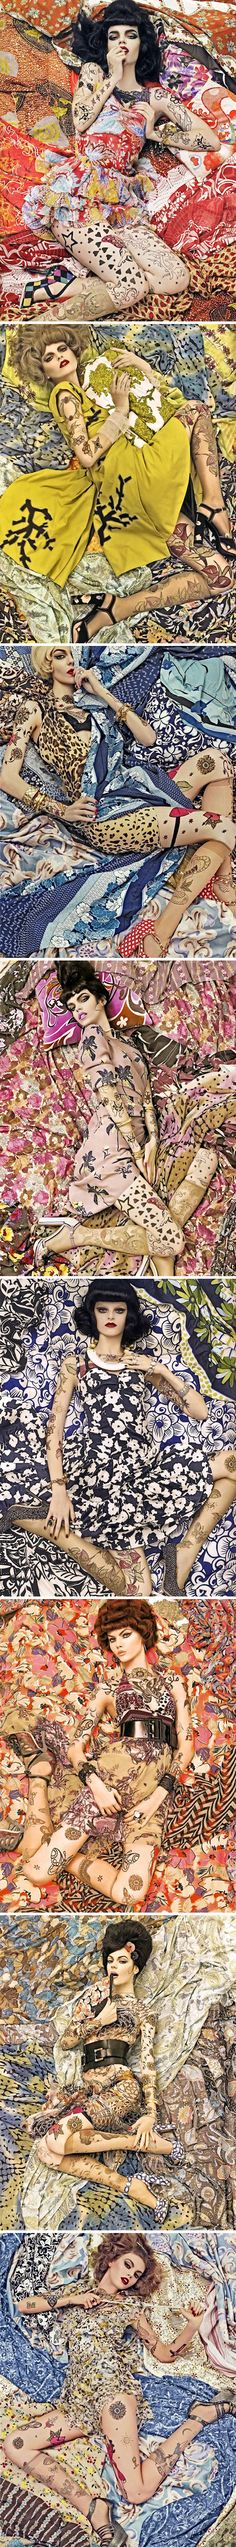 A elaborate and flamboyant 'Chameleon' concept photographed by the legendary Steven Meisel in 2007 for Vogue Italia Spring Patterns Issue. #fashion #photography